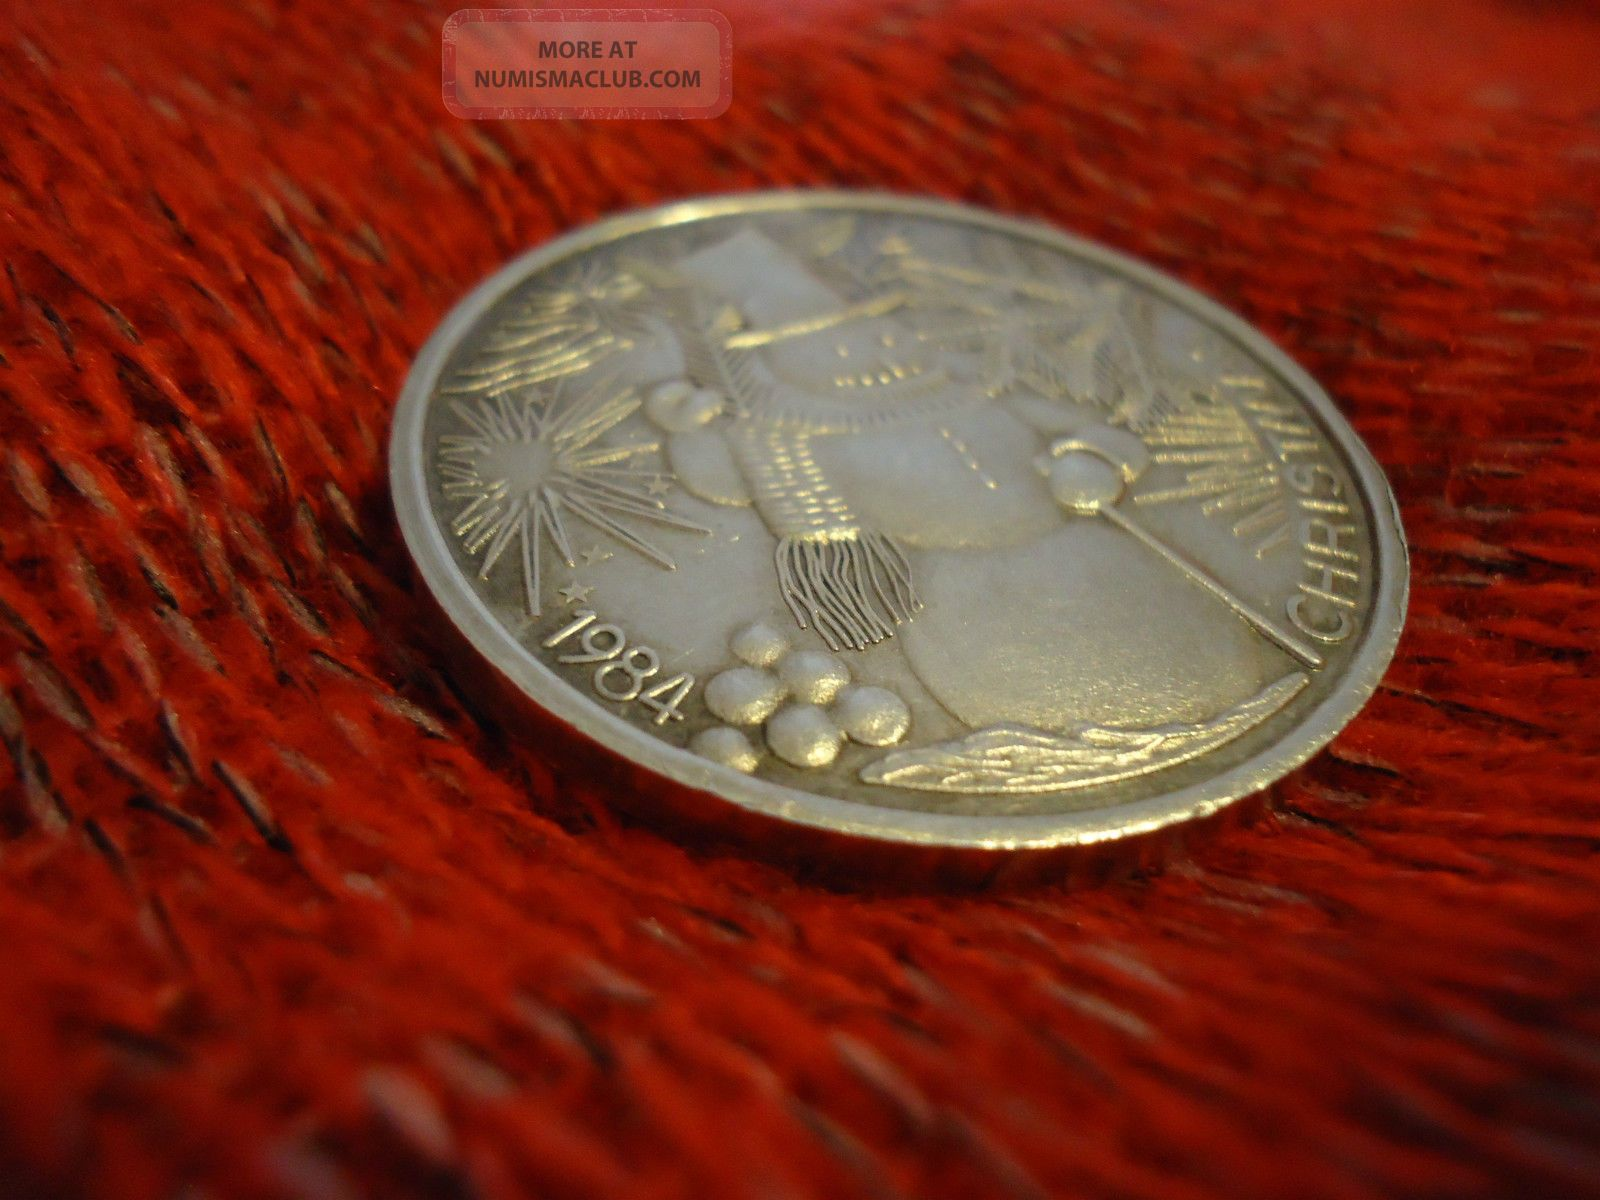 Rare 1984 Christmas Coin Solid One Troy Oz 999 Silver